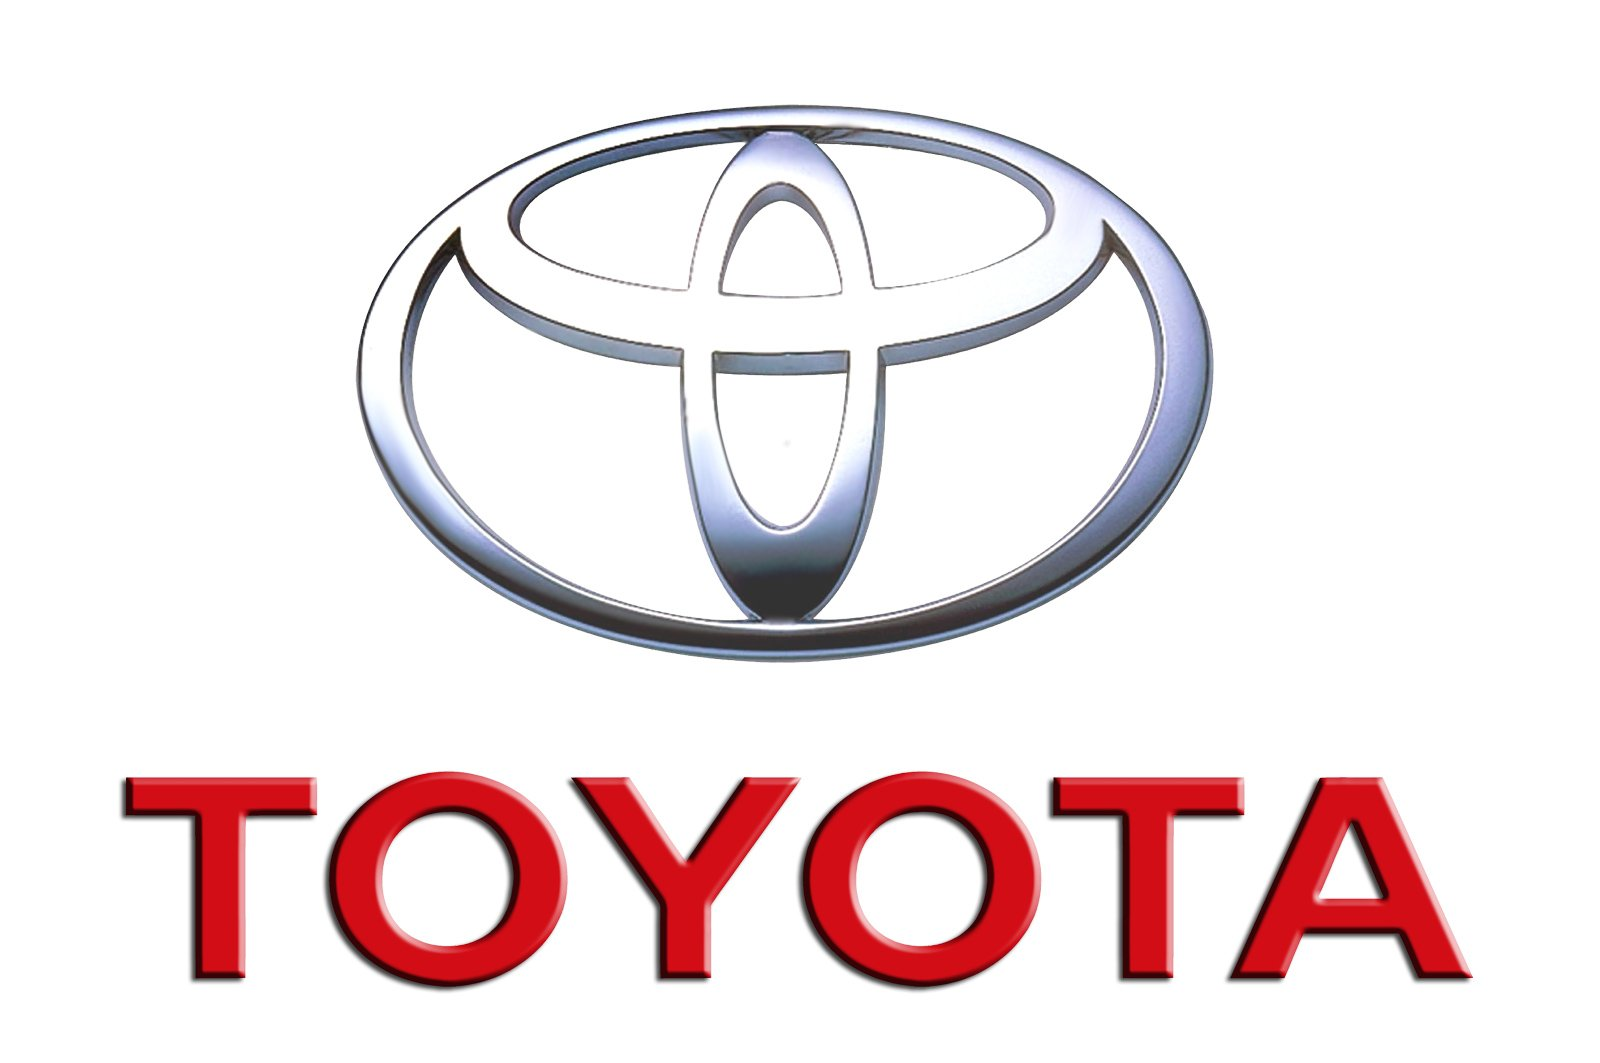 toyota motor company Toyota motor corporation manufactures, sells, leases, and repairs passenger cars, trucks, buses, and their related parts worldwide the company also operates financing services through their .